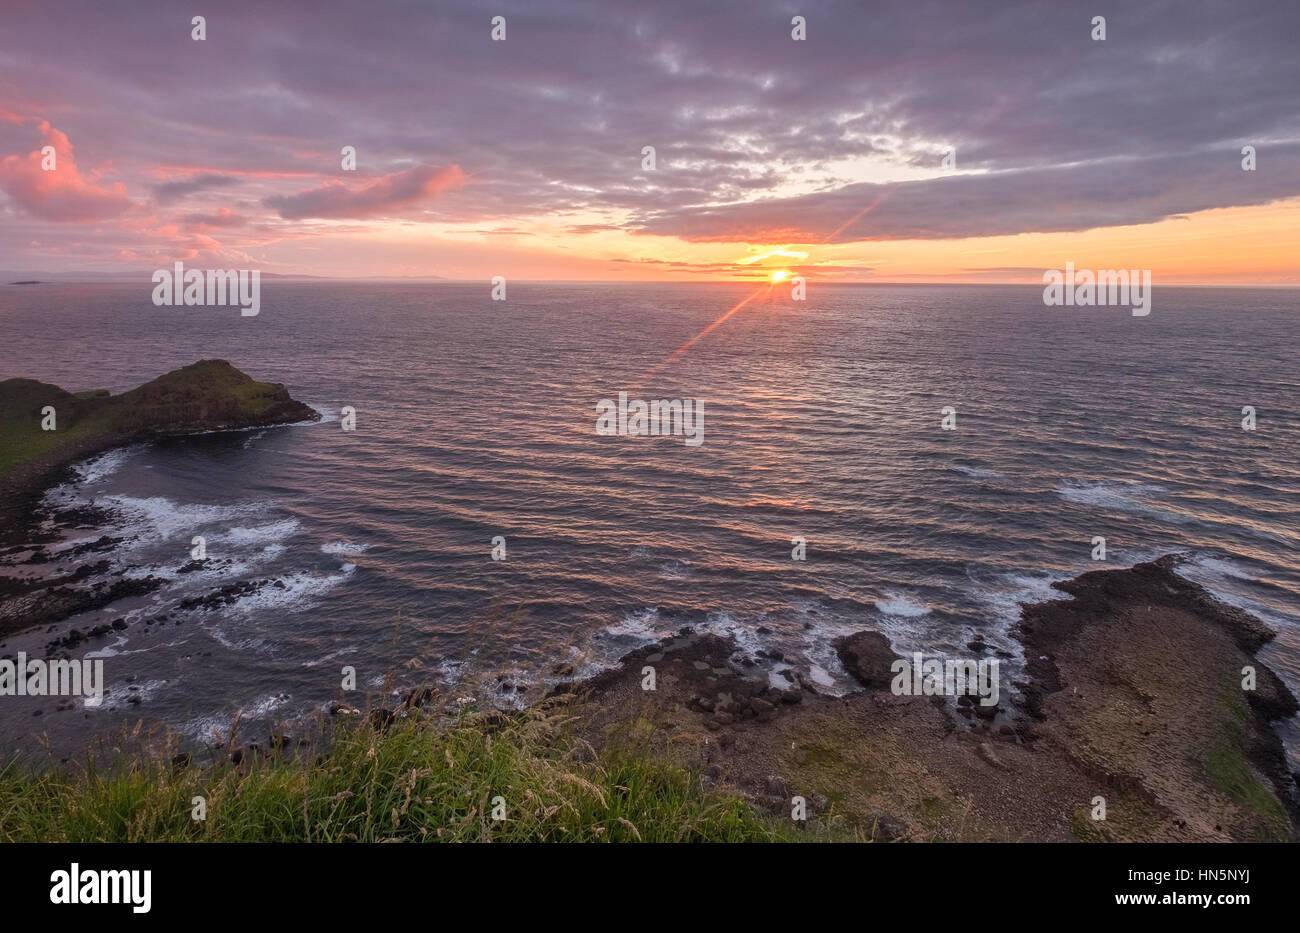 High above the famous stones at The Giants Causeway in Northern Ireland as the sun sets on the horizon - Stock Image